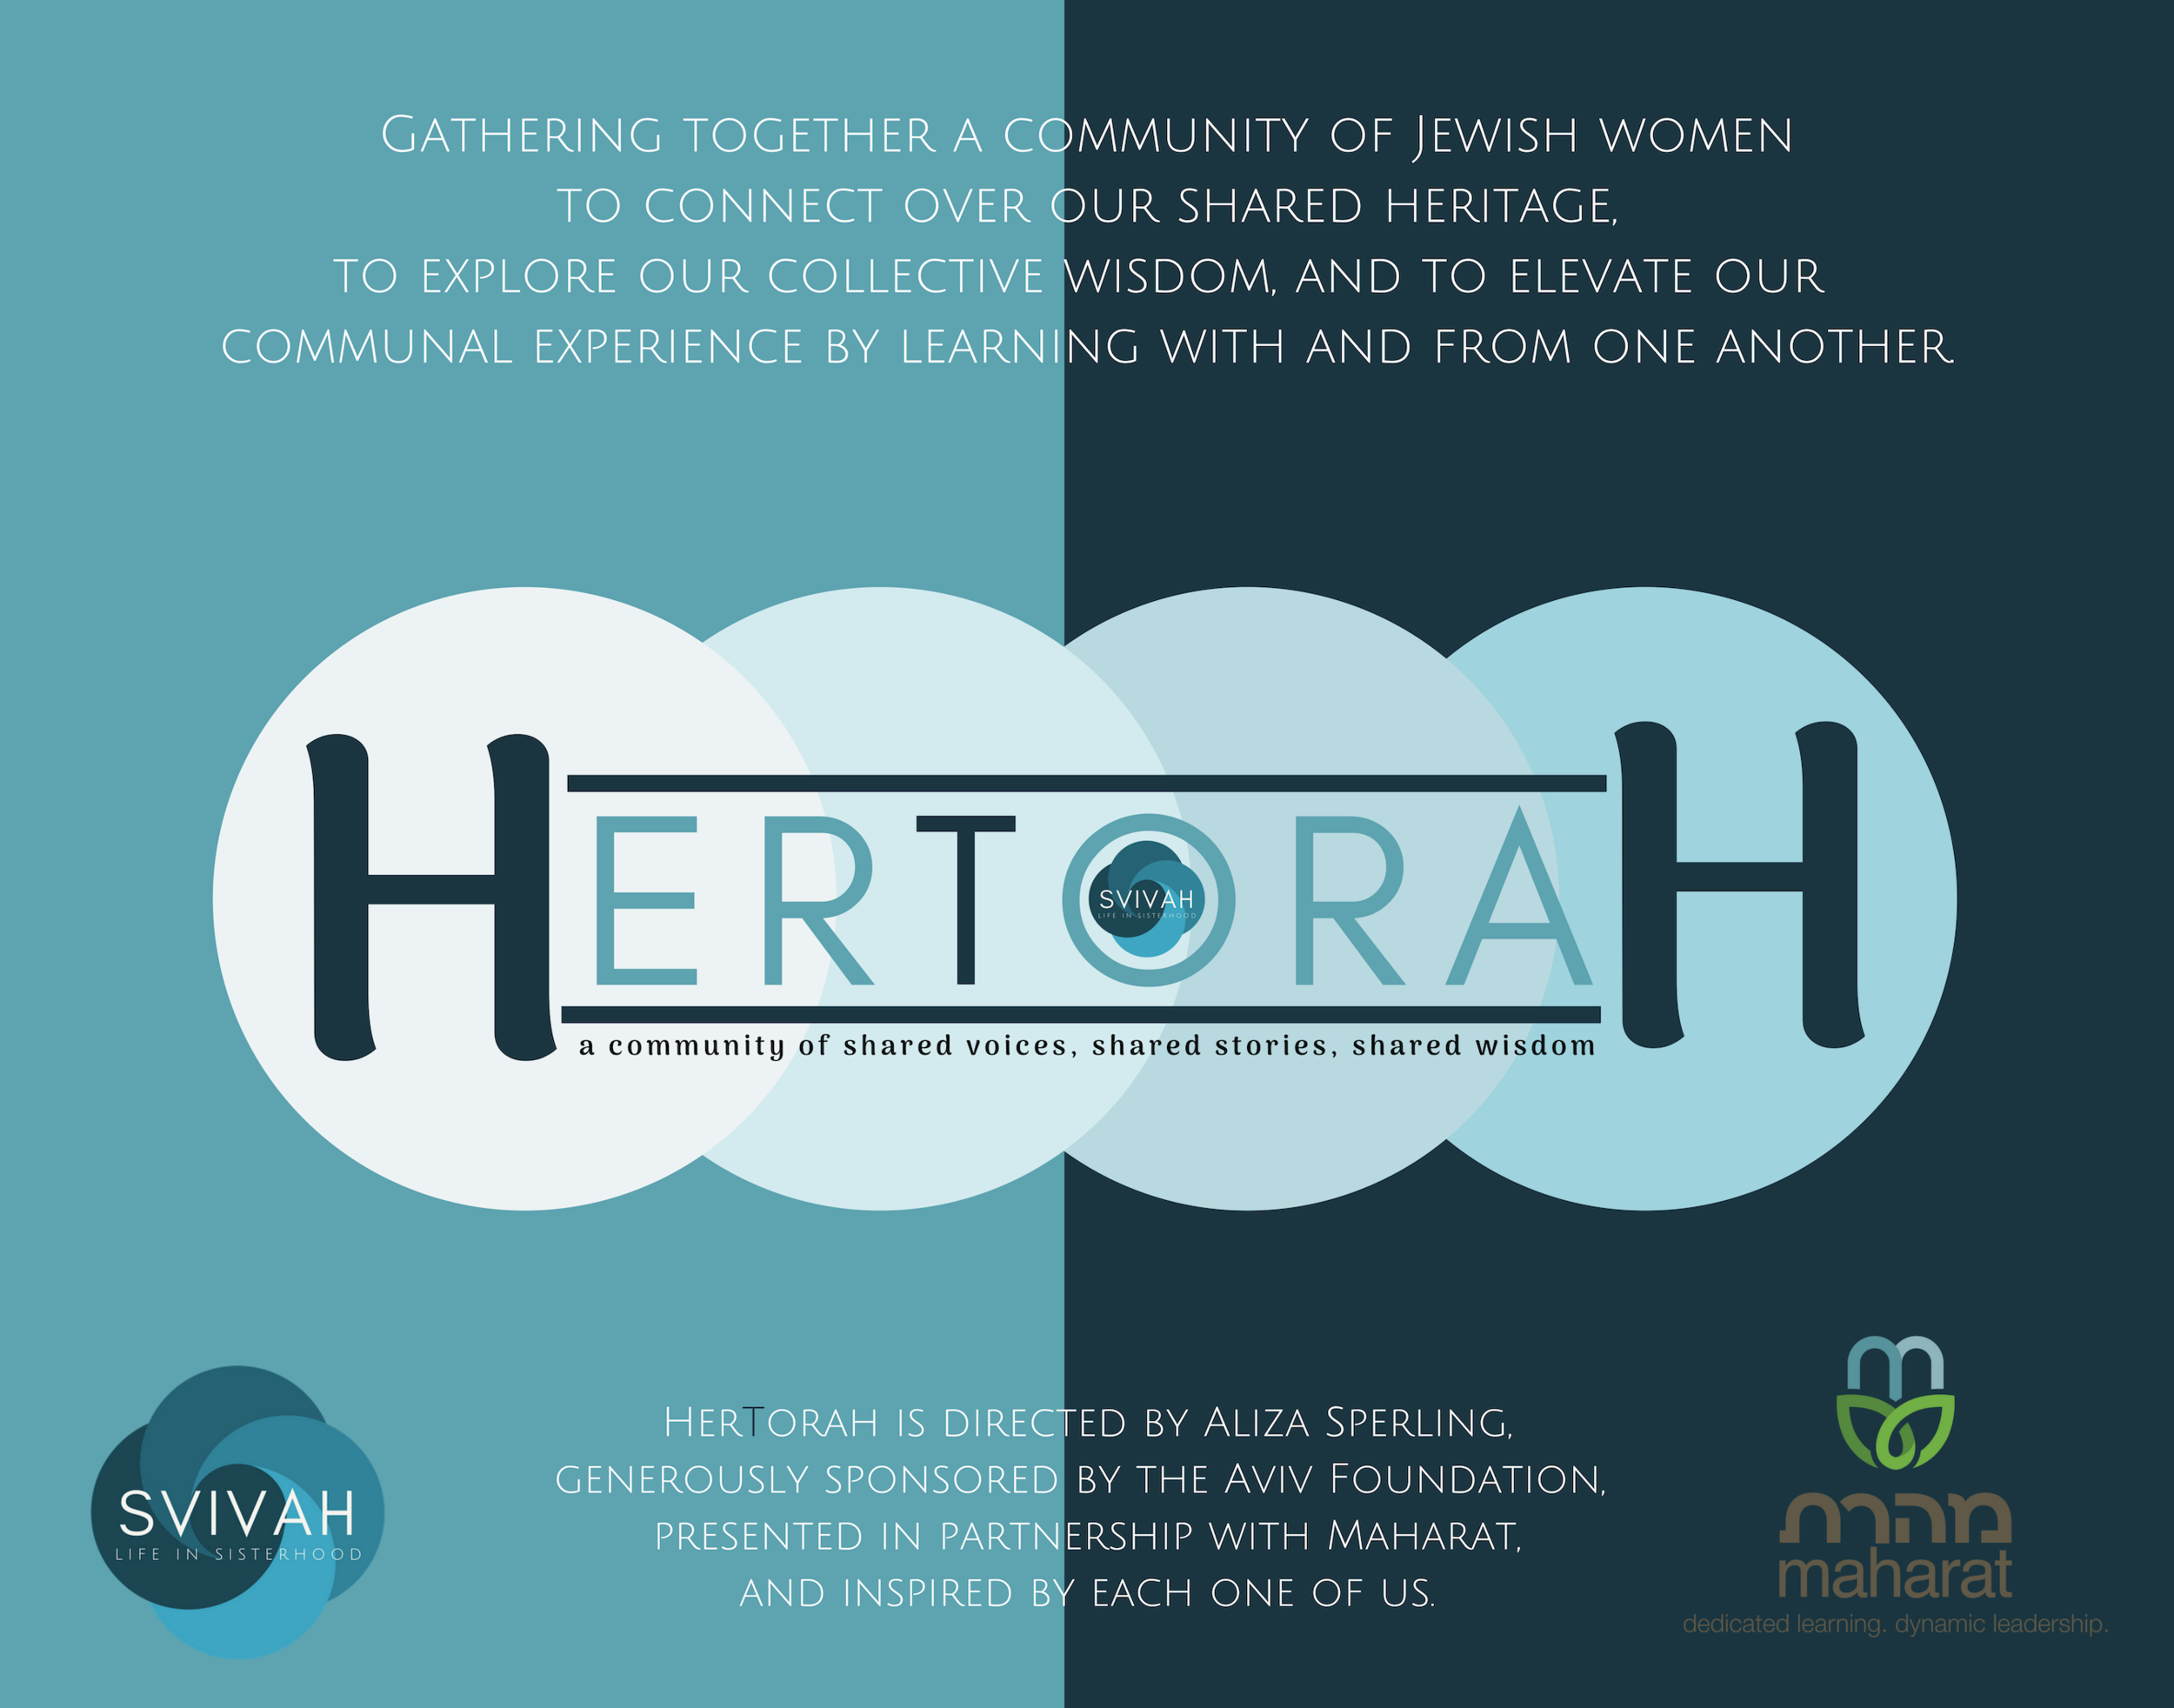 HerTorah gathers together a diverse community of Jewish womento connect over our shared heritage, explore our collective wisdom, and elevateour communal experiencein learning with andfrom one another. -